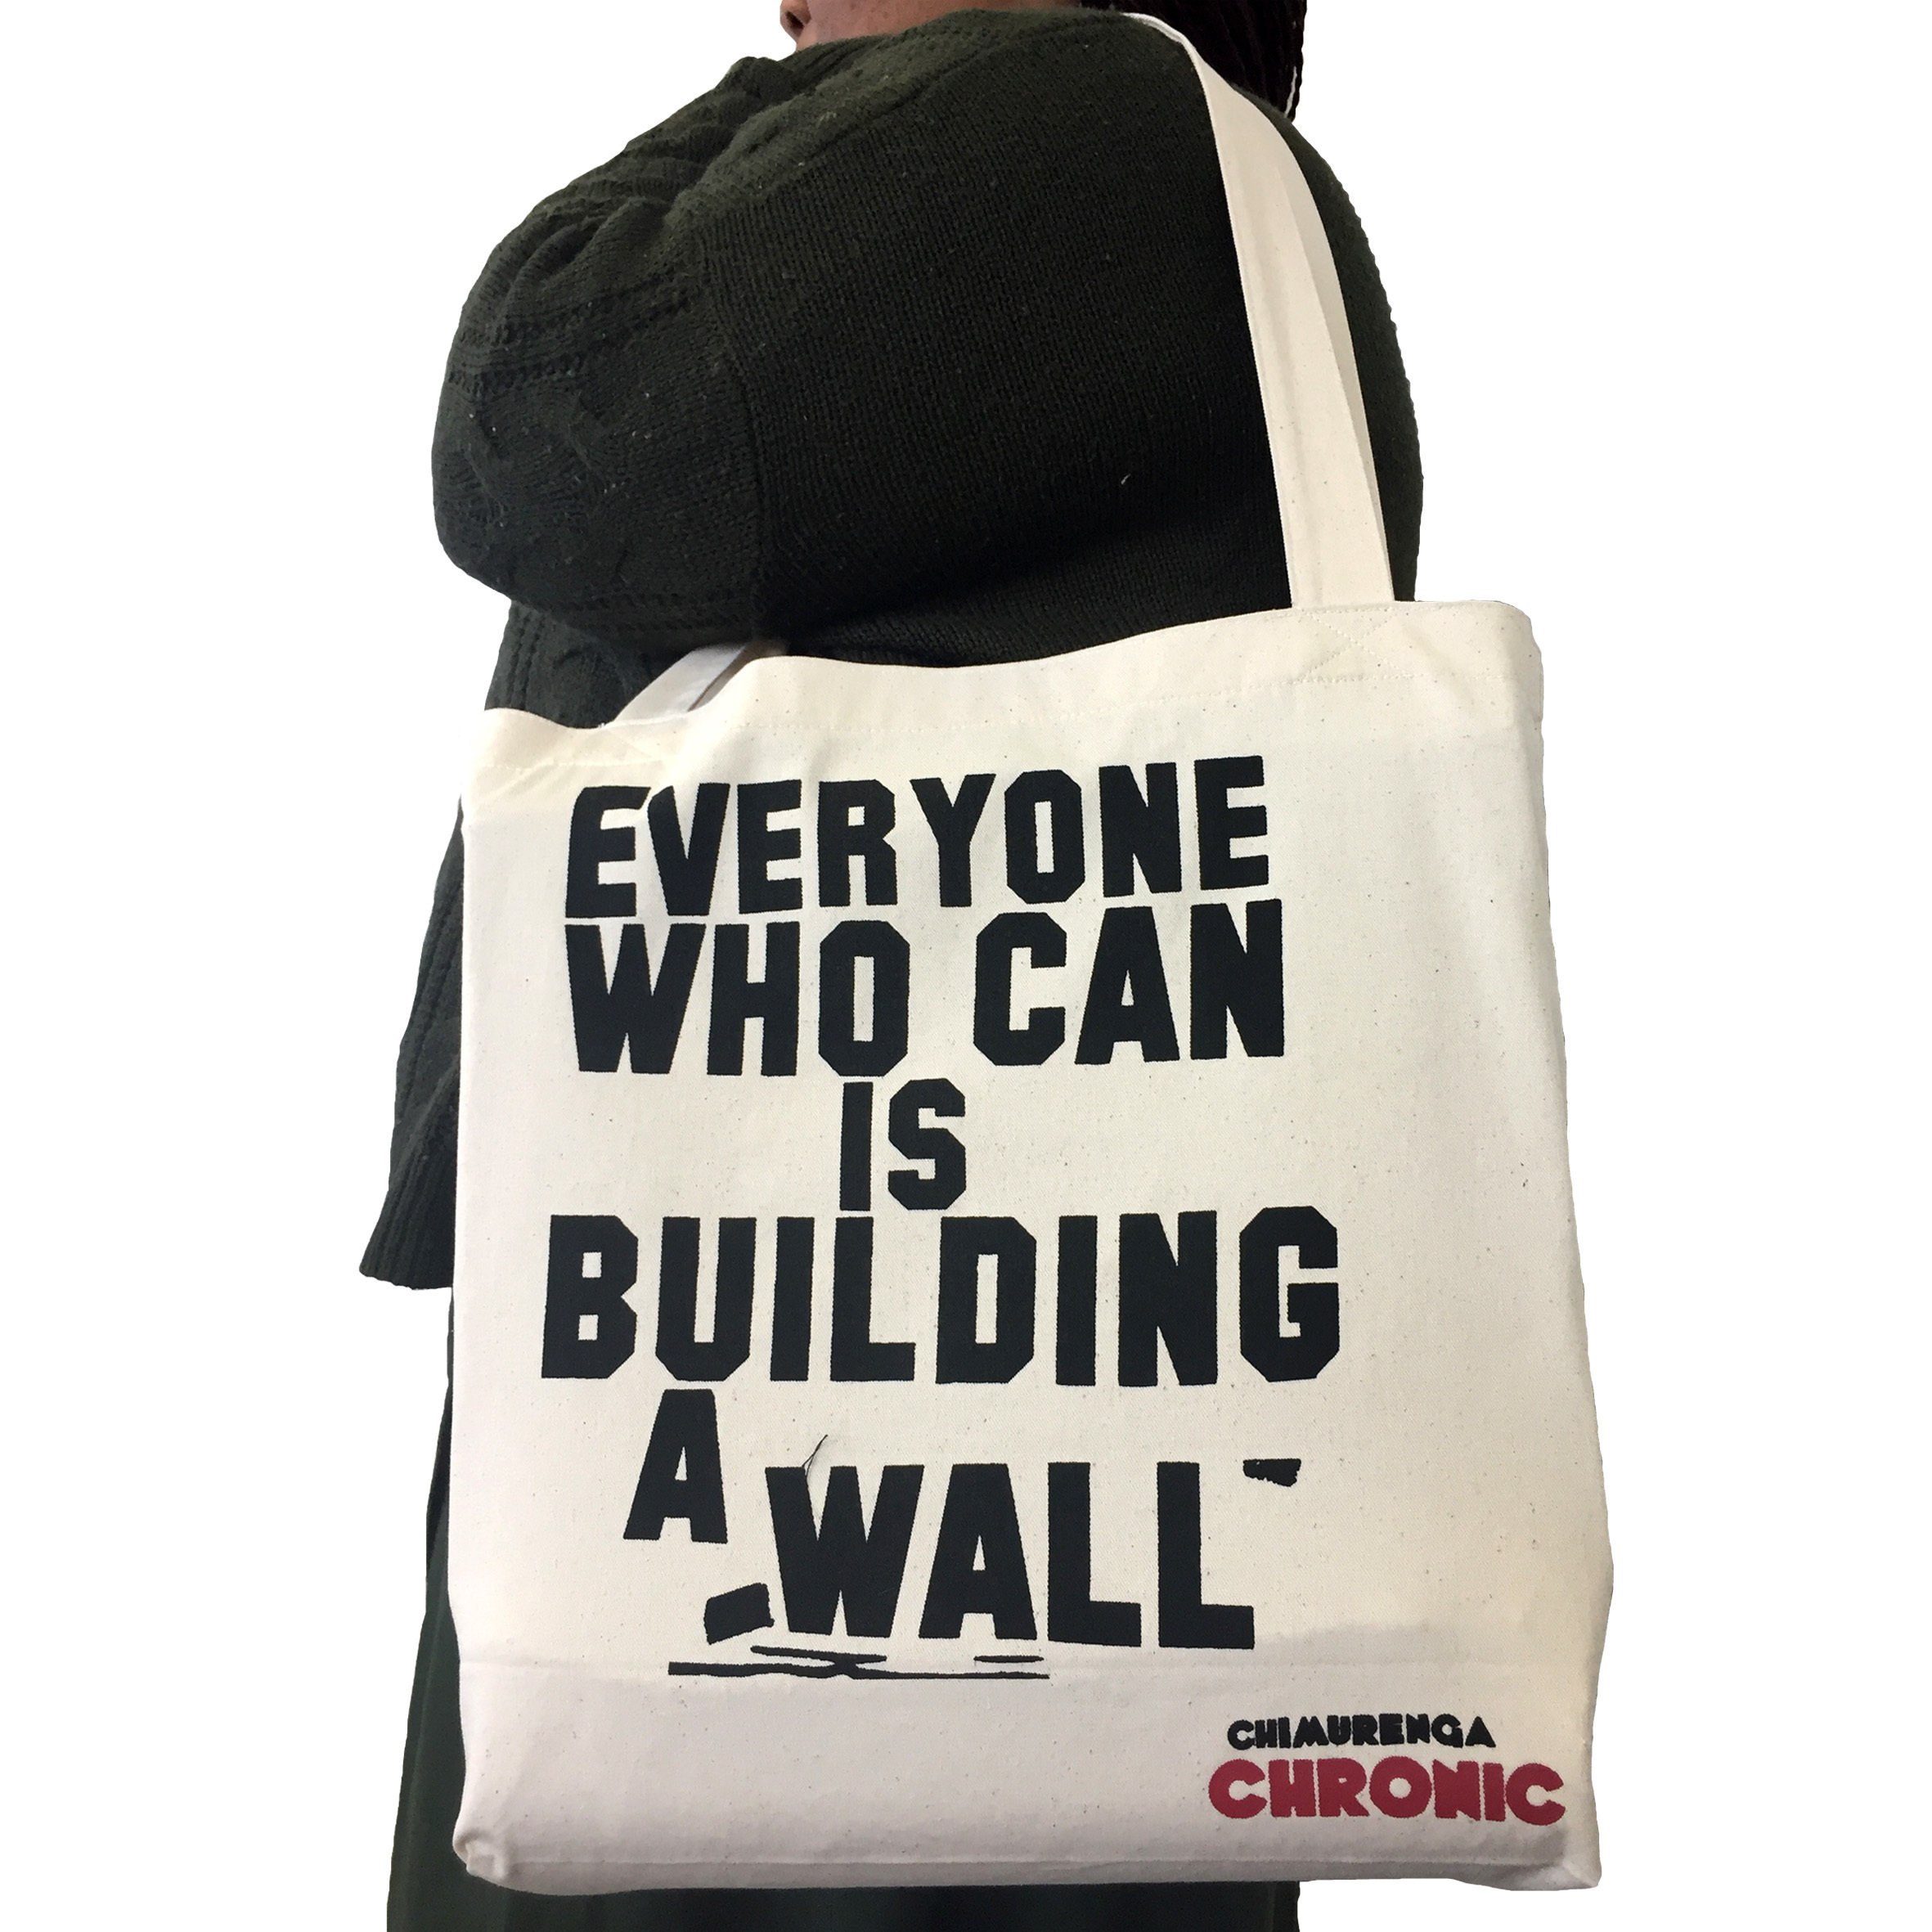 Chimurenga Chronic Tote Bag –Everyone who can is building a wall CCTB03